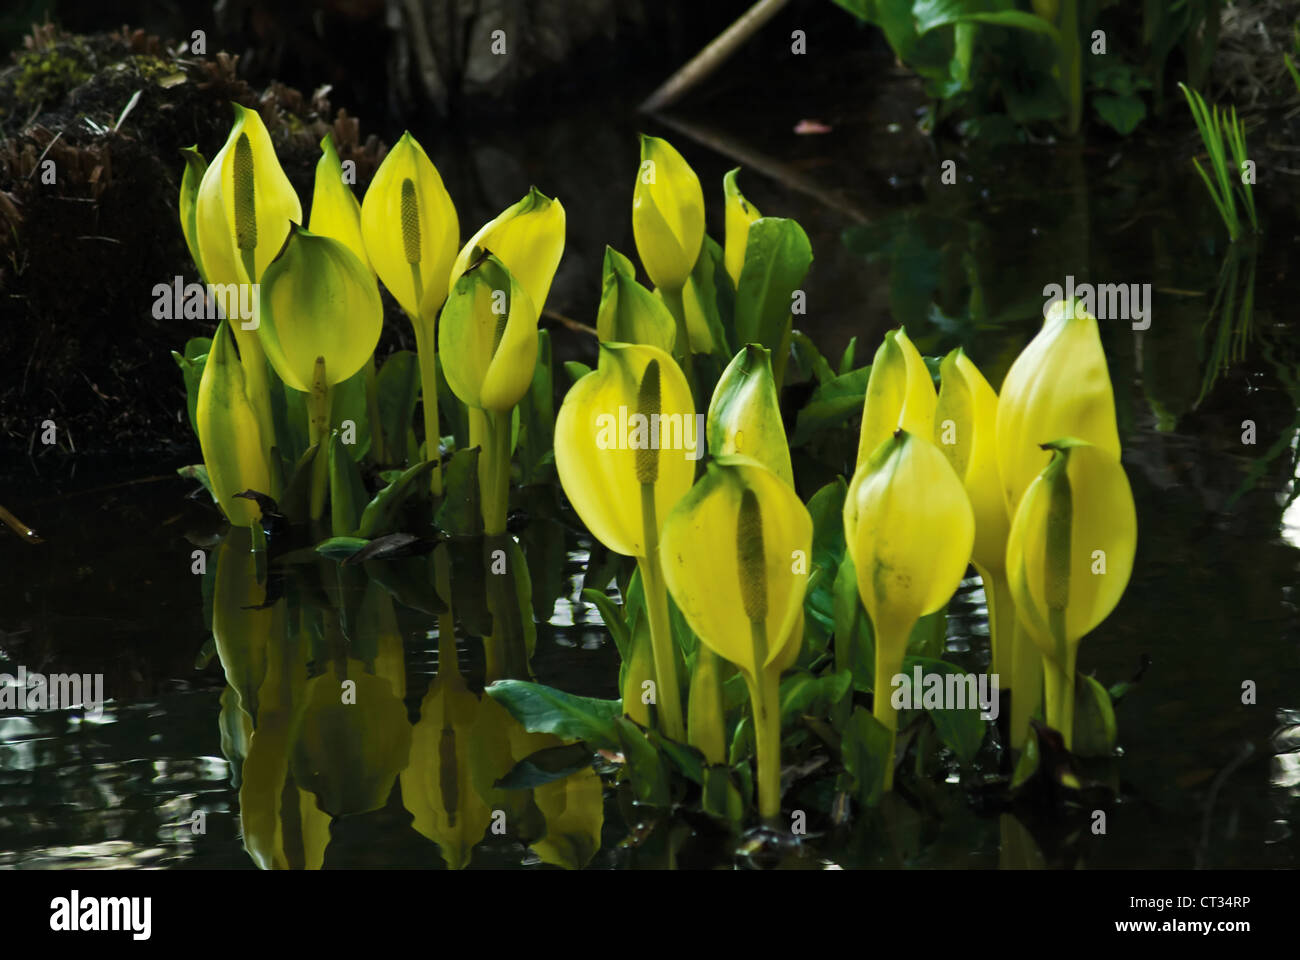 Lysichiton americanus, Skunk cabbage Stock Photo